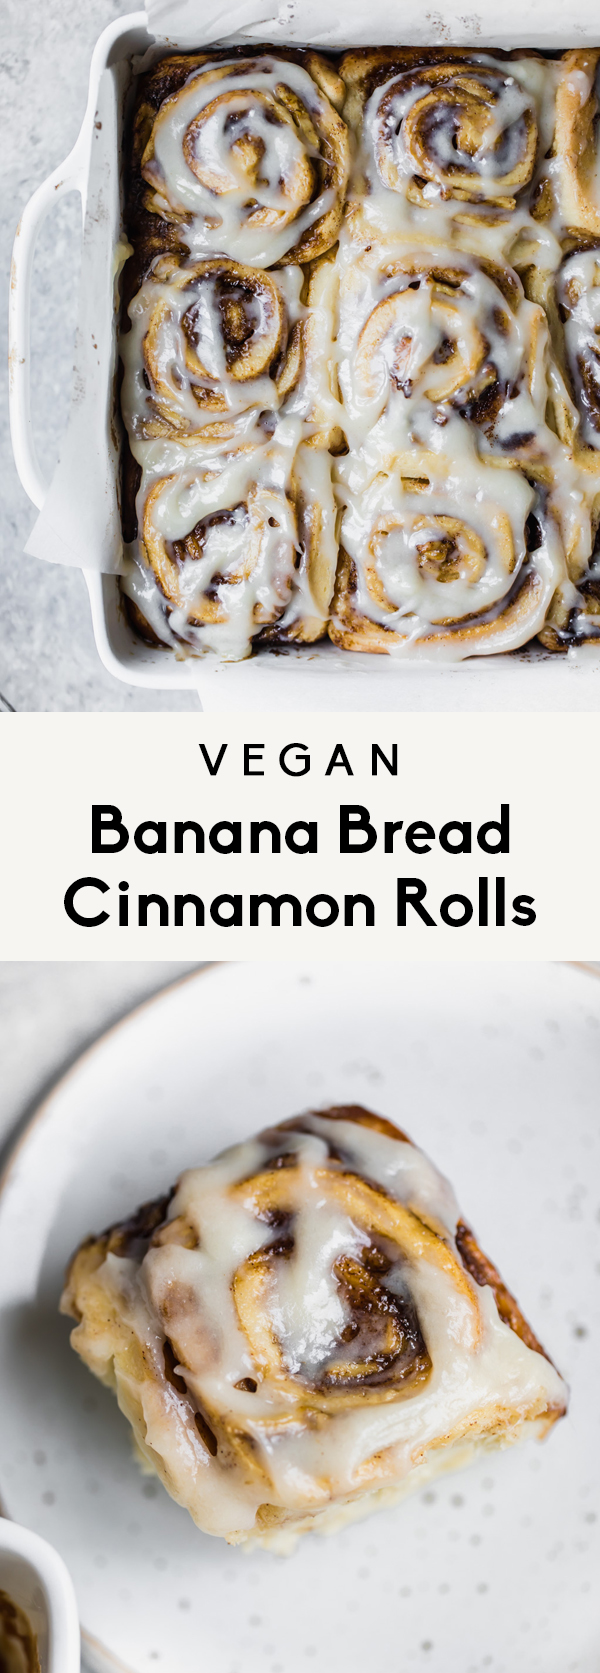 Vegan Banana Bread Cinnamon Rolls | Ambitious Kitchen